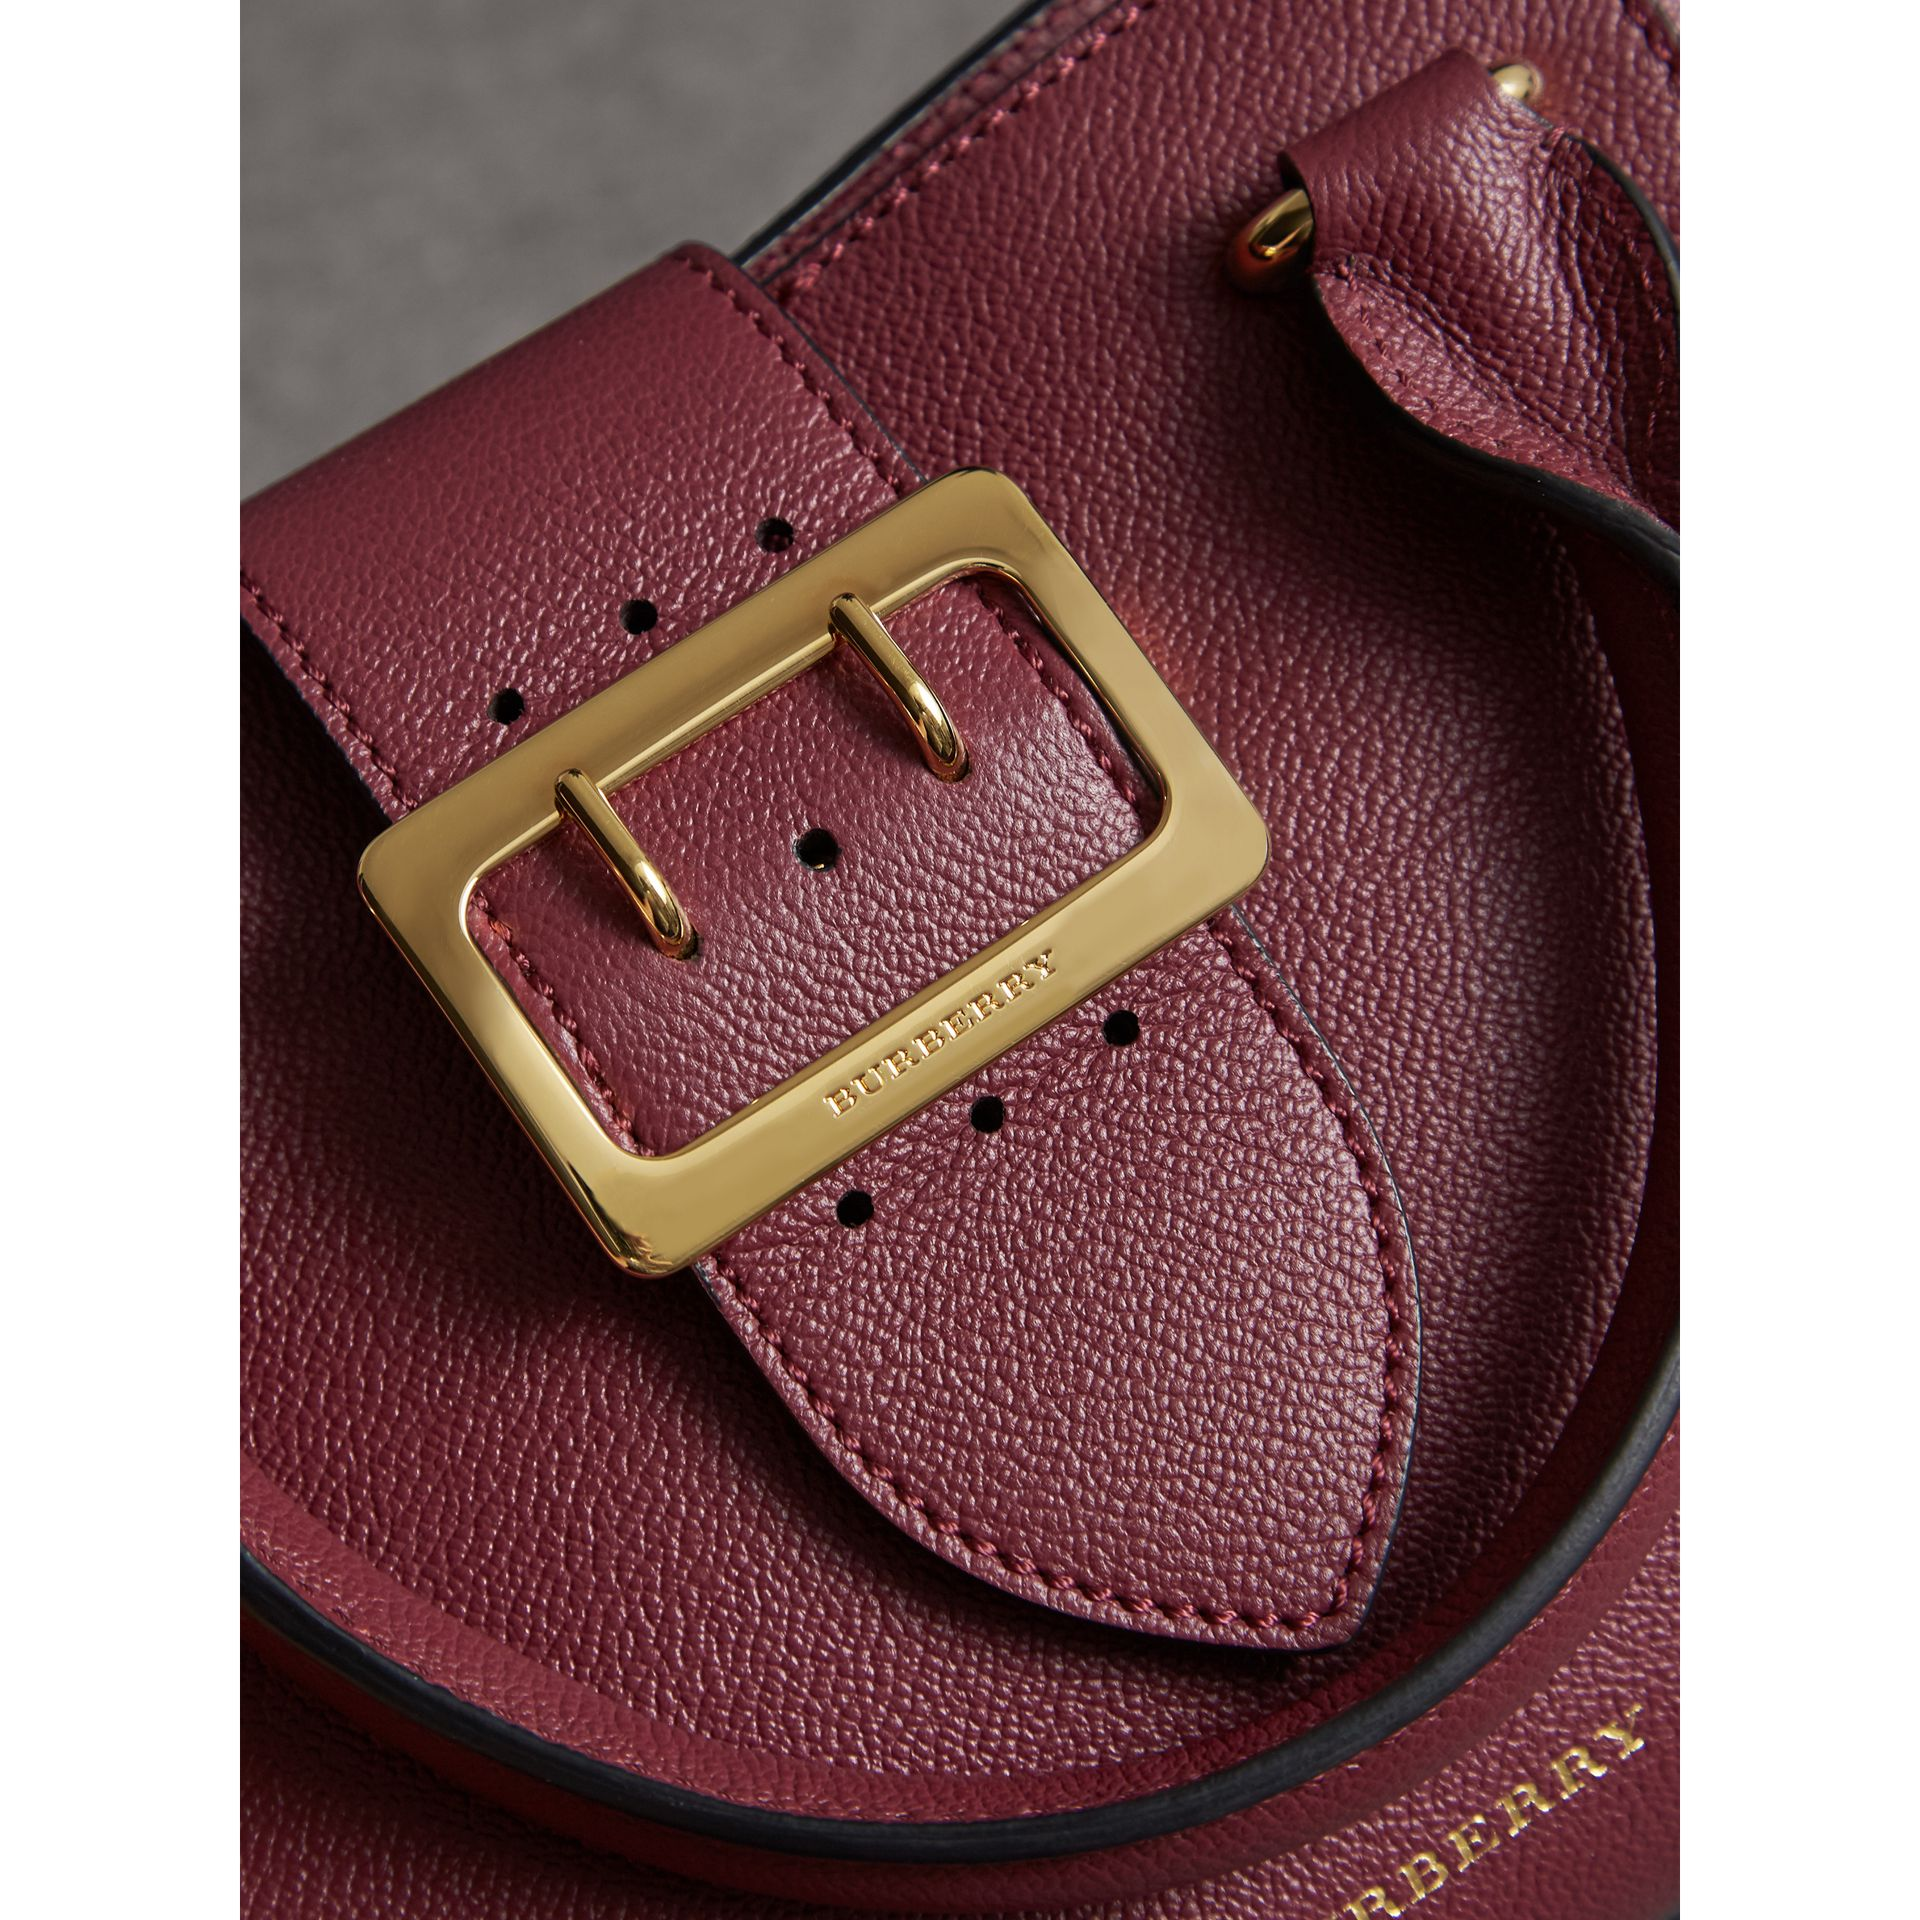 Borsa tote The Buckle piccola in pelle a grana (Prugna Scuro) - Donna | Burberry - immagine della galleria 2